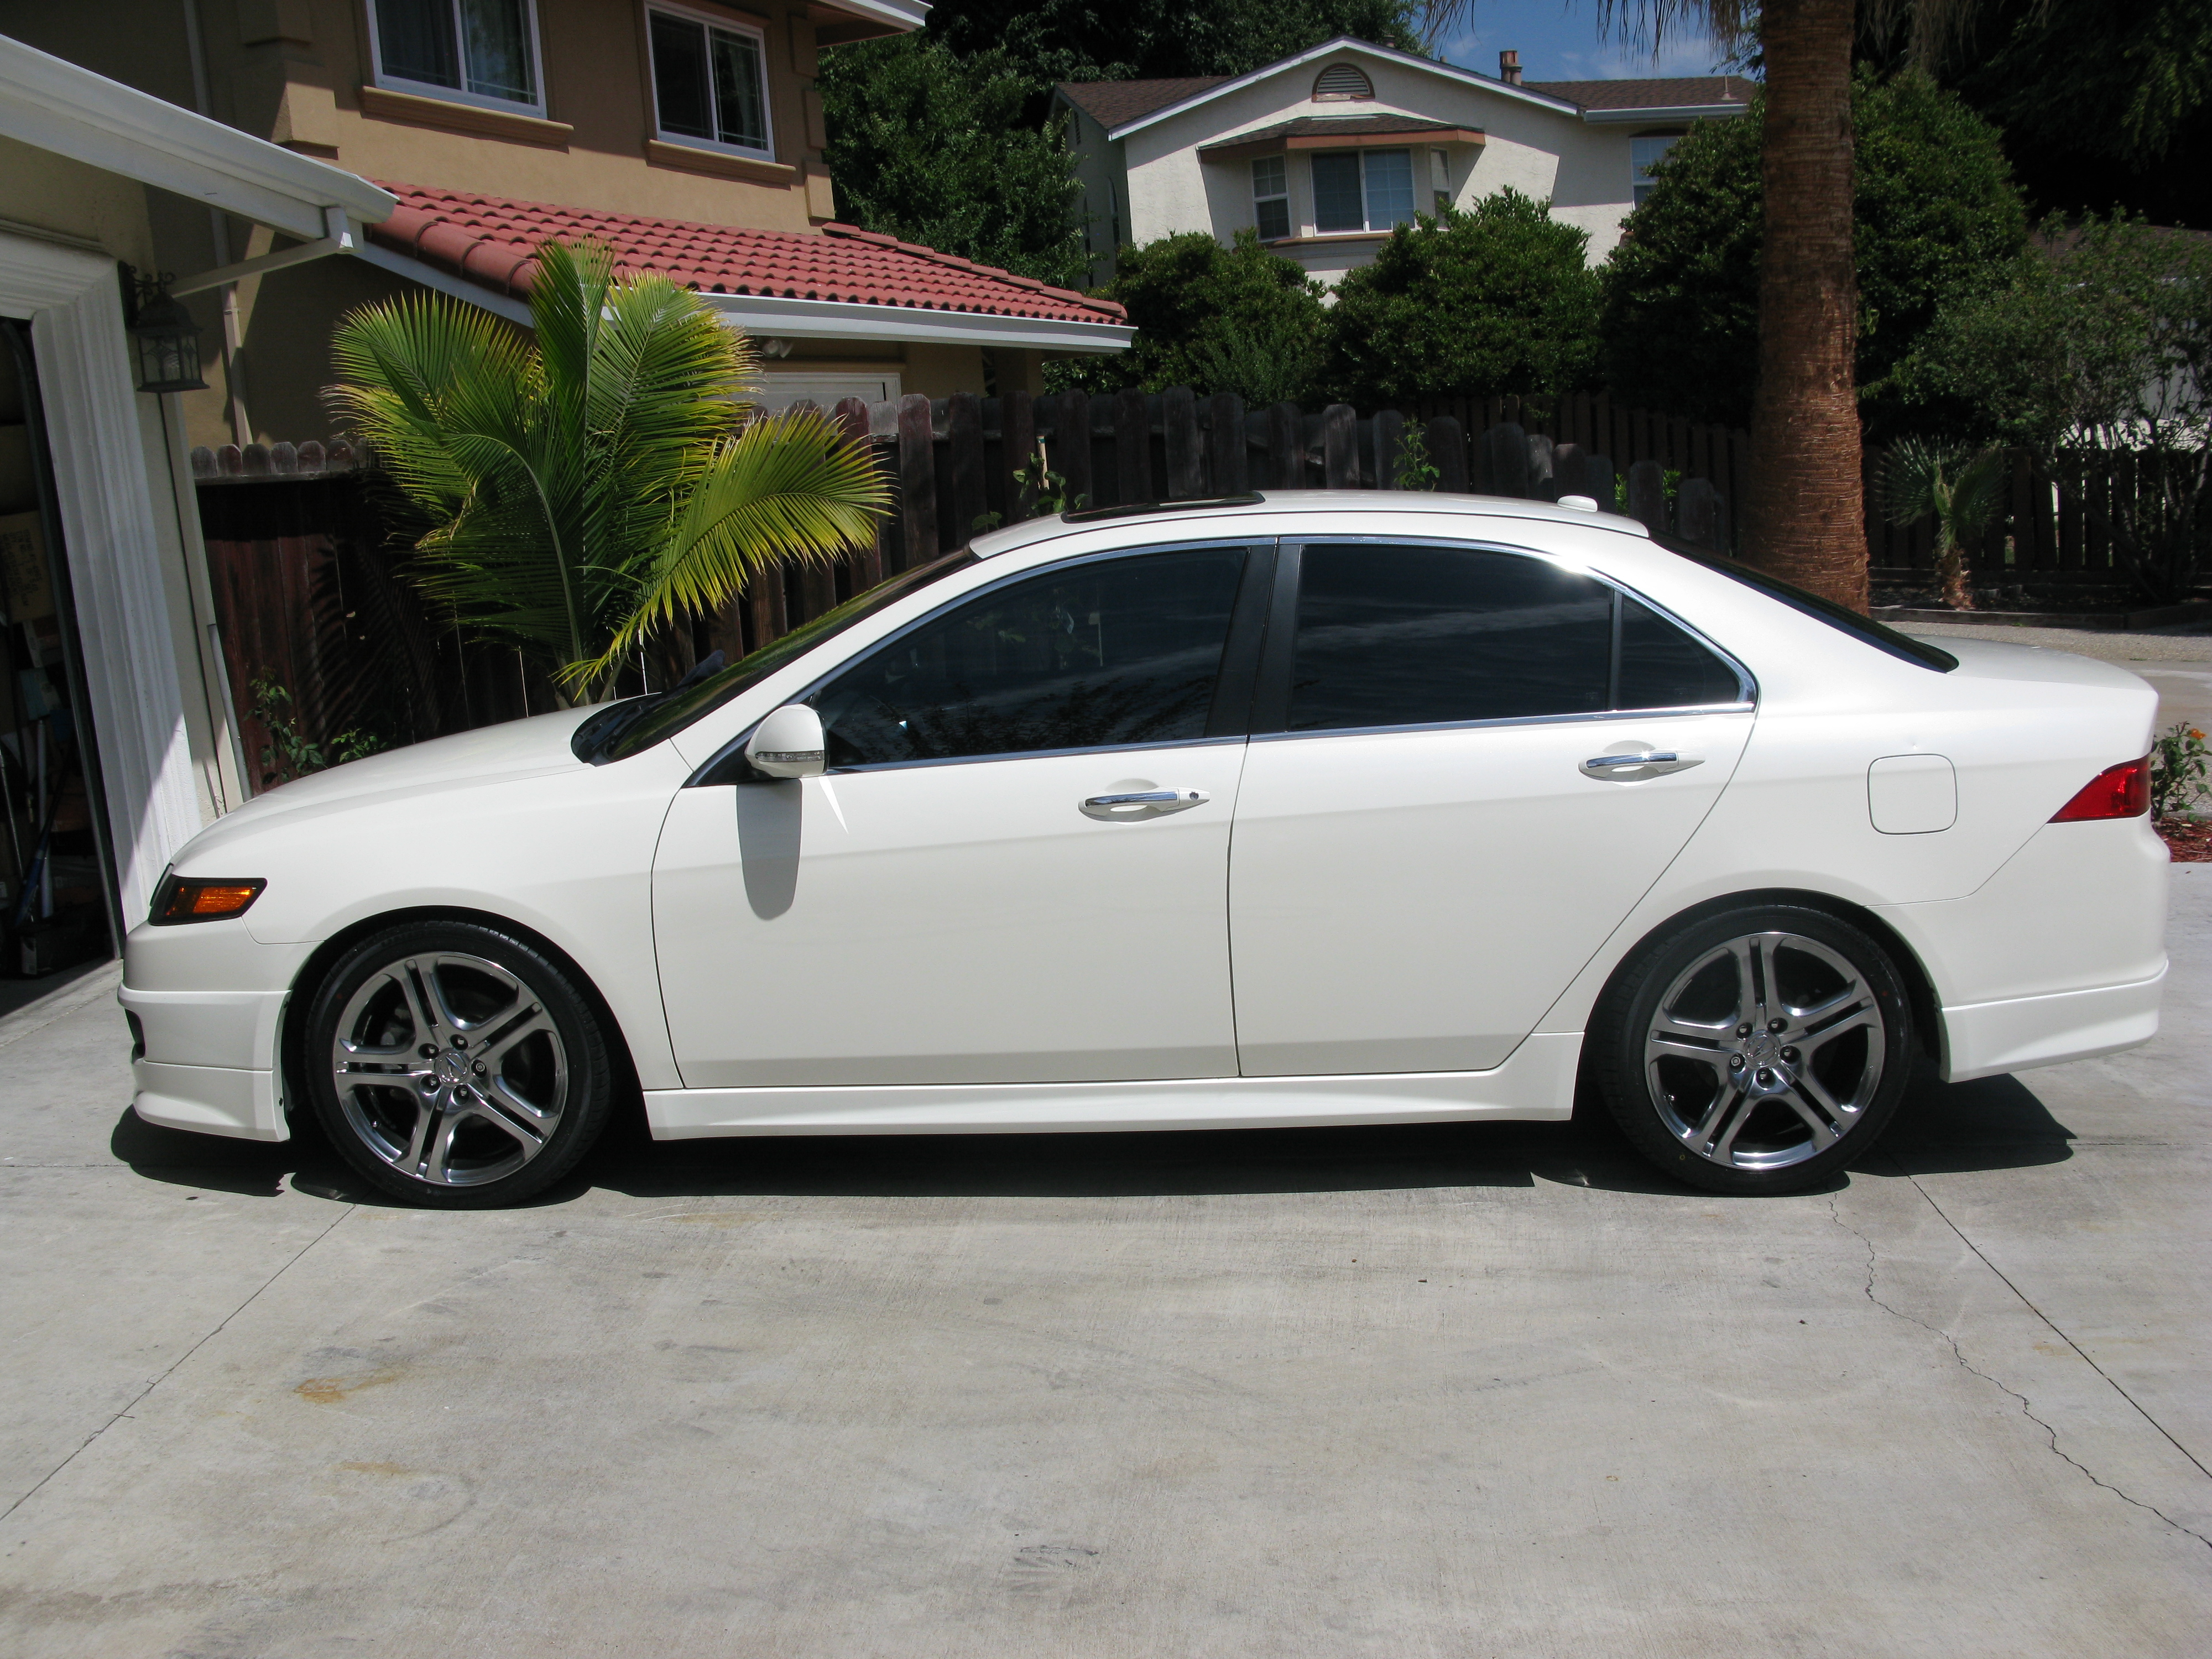 acura tsx 2007 pictures